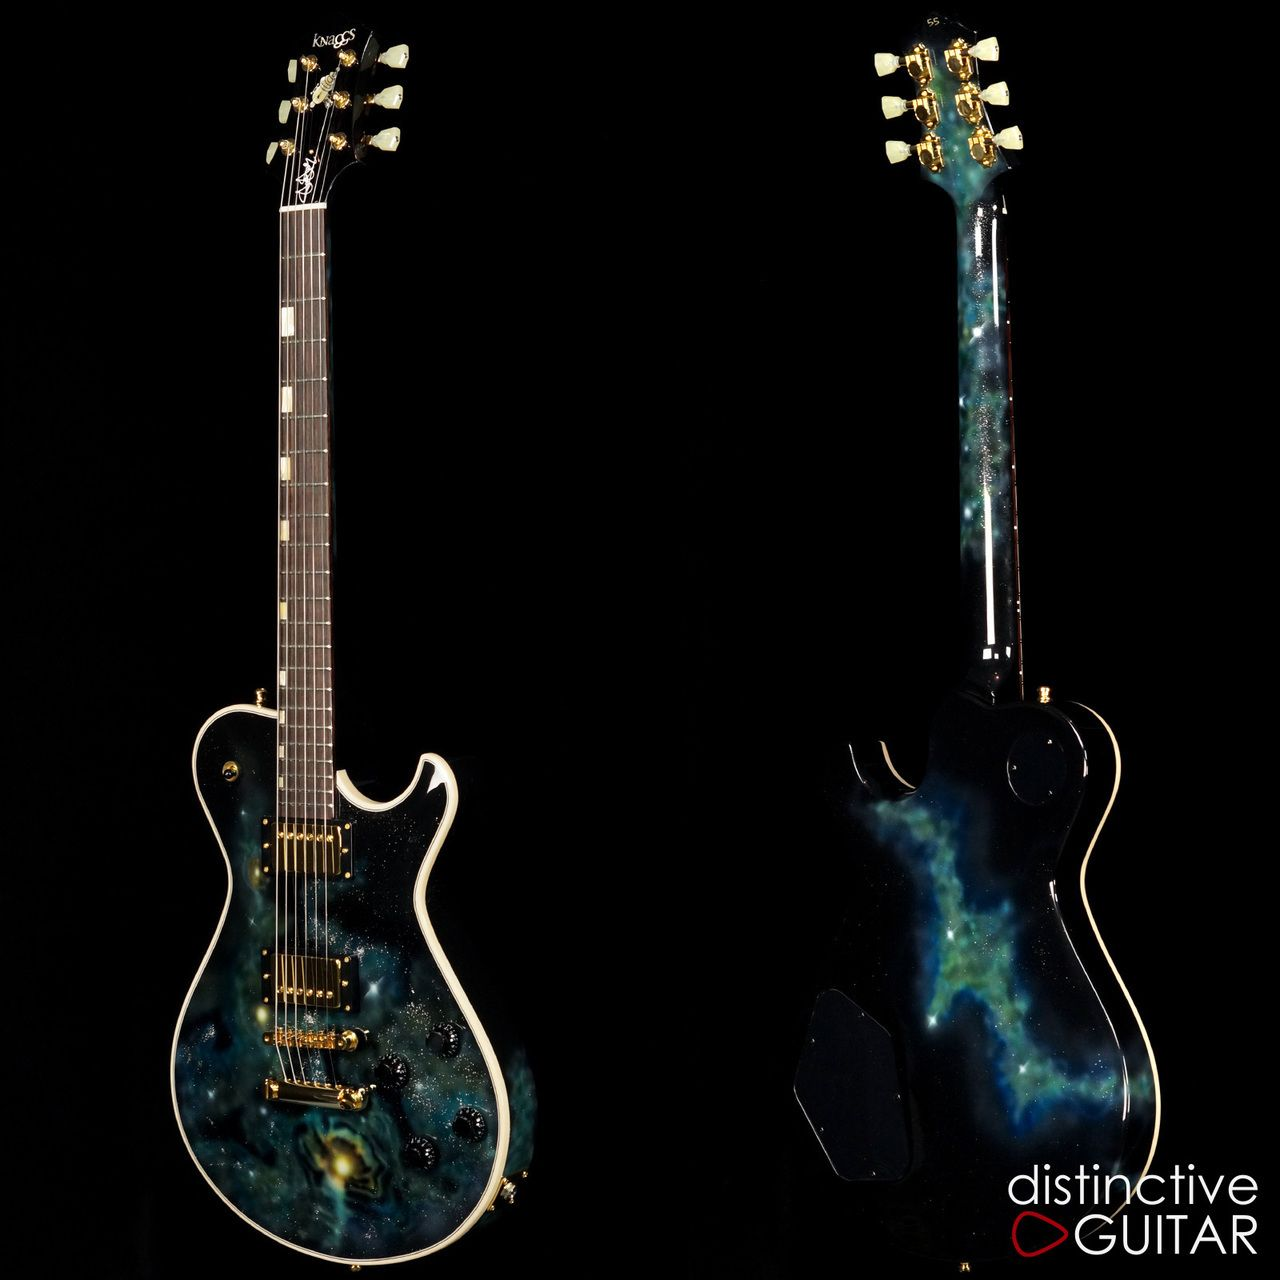 Knaggs Kenai SSC Steve Stevens Signature w/ Galaxy finish available at distinctiveguitar.com